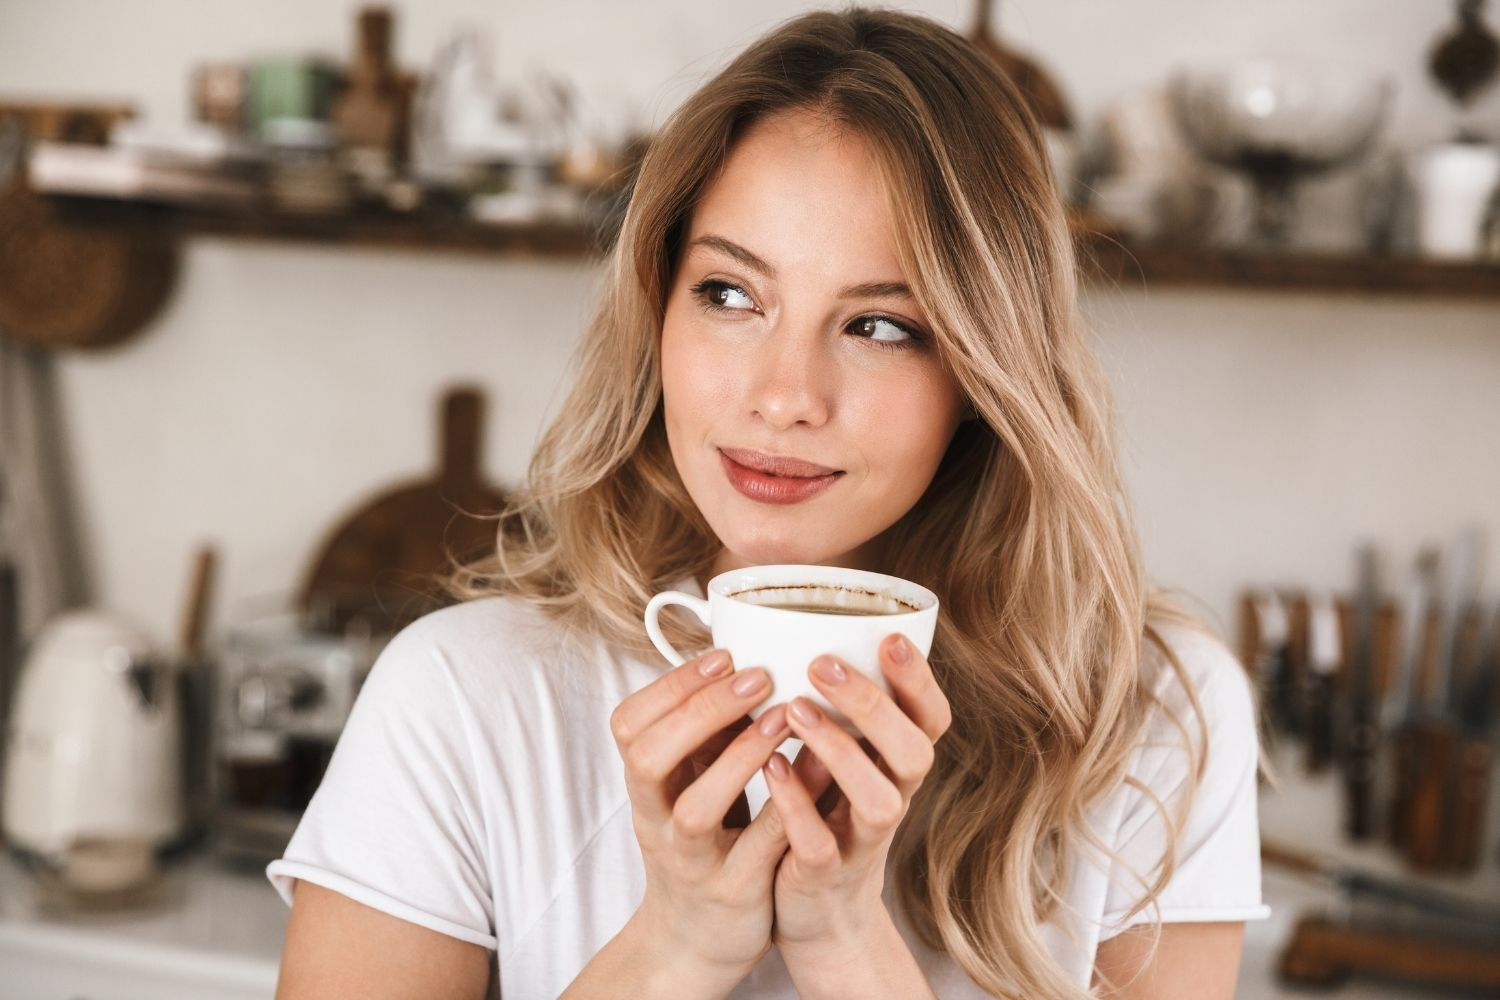 woman drinking coffee that is less acidic.